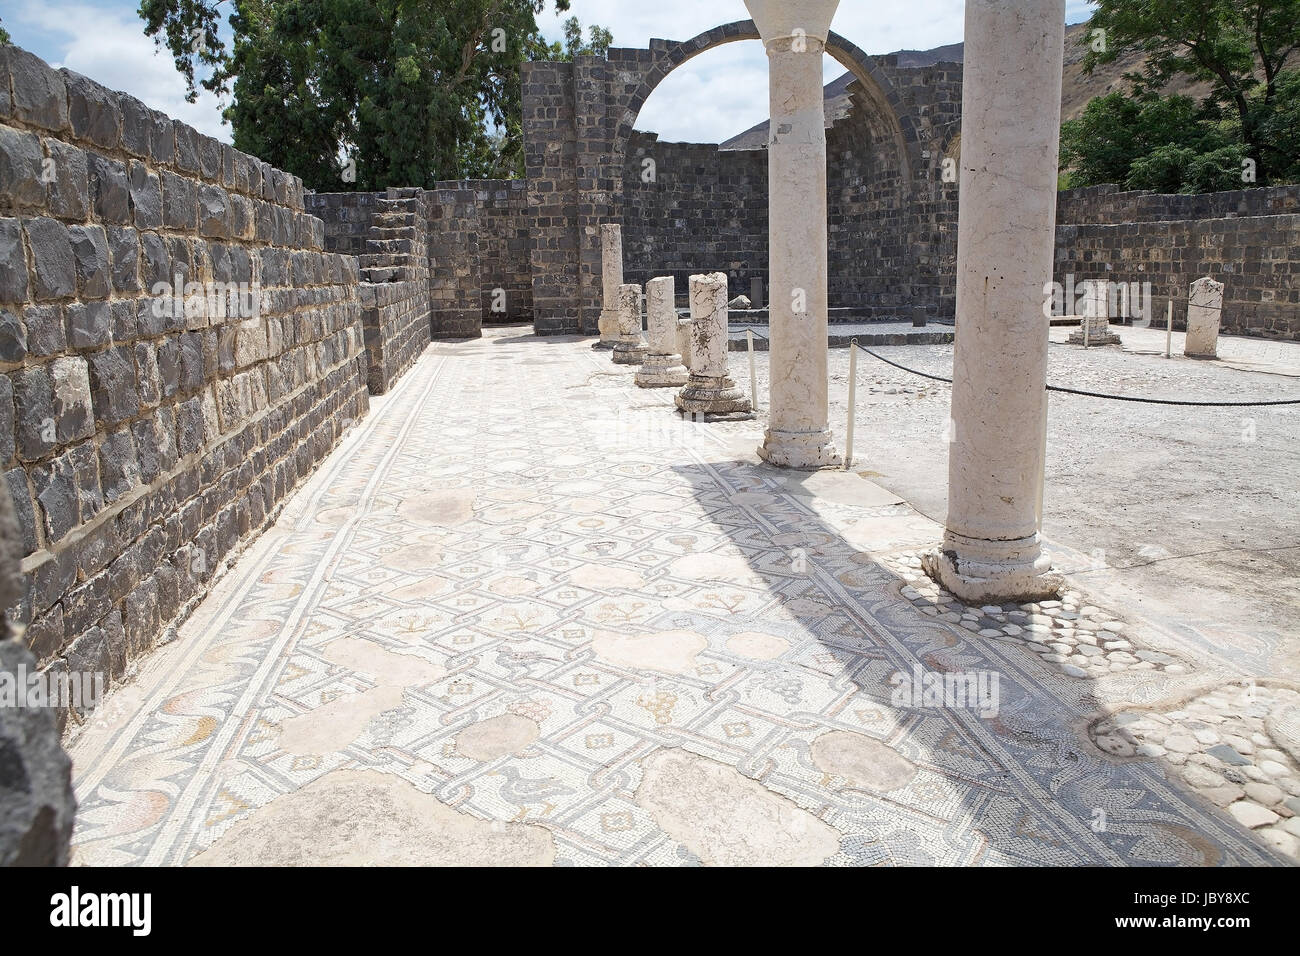 The ruins of the ancient church at the Kursi National Park, Israel. Kursi, in the Christian tradition, is identified - Stock Image